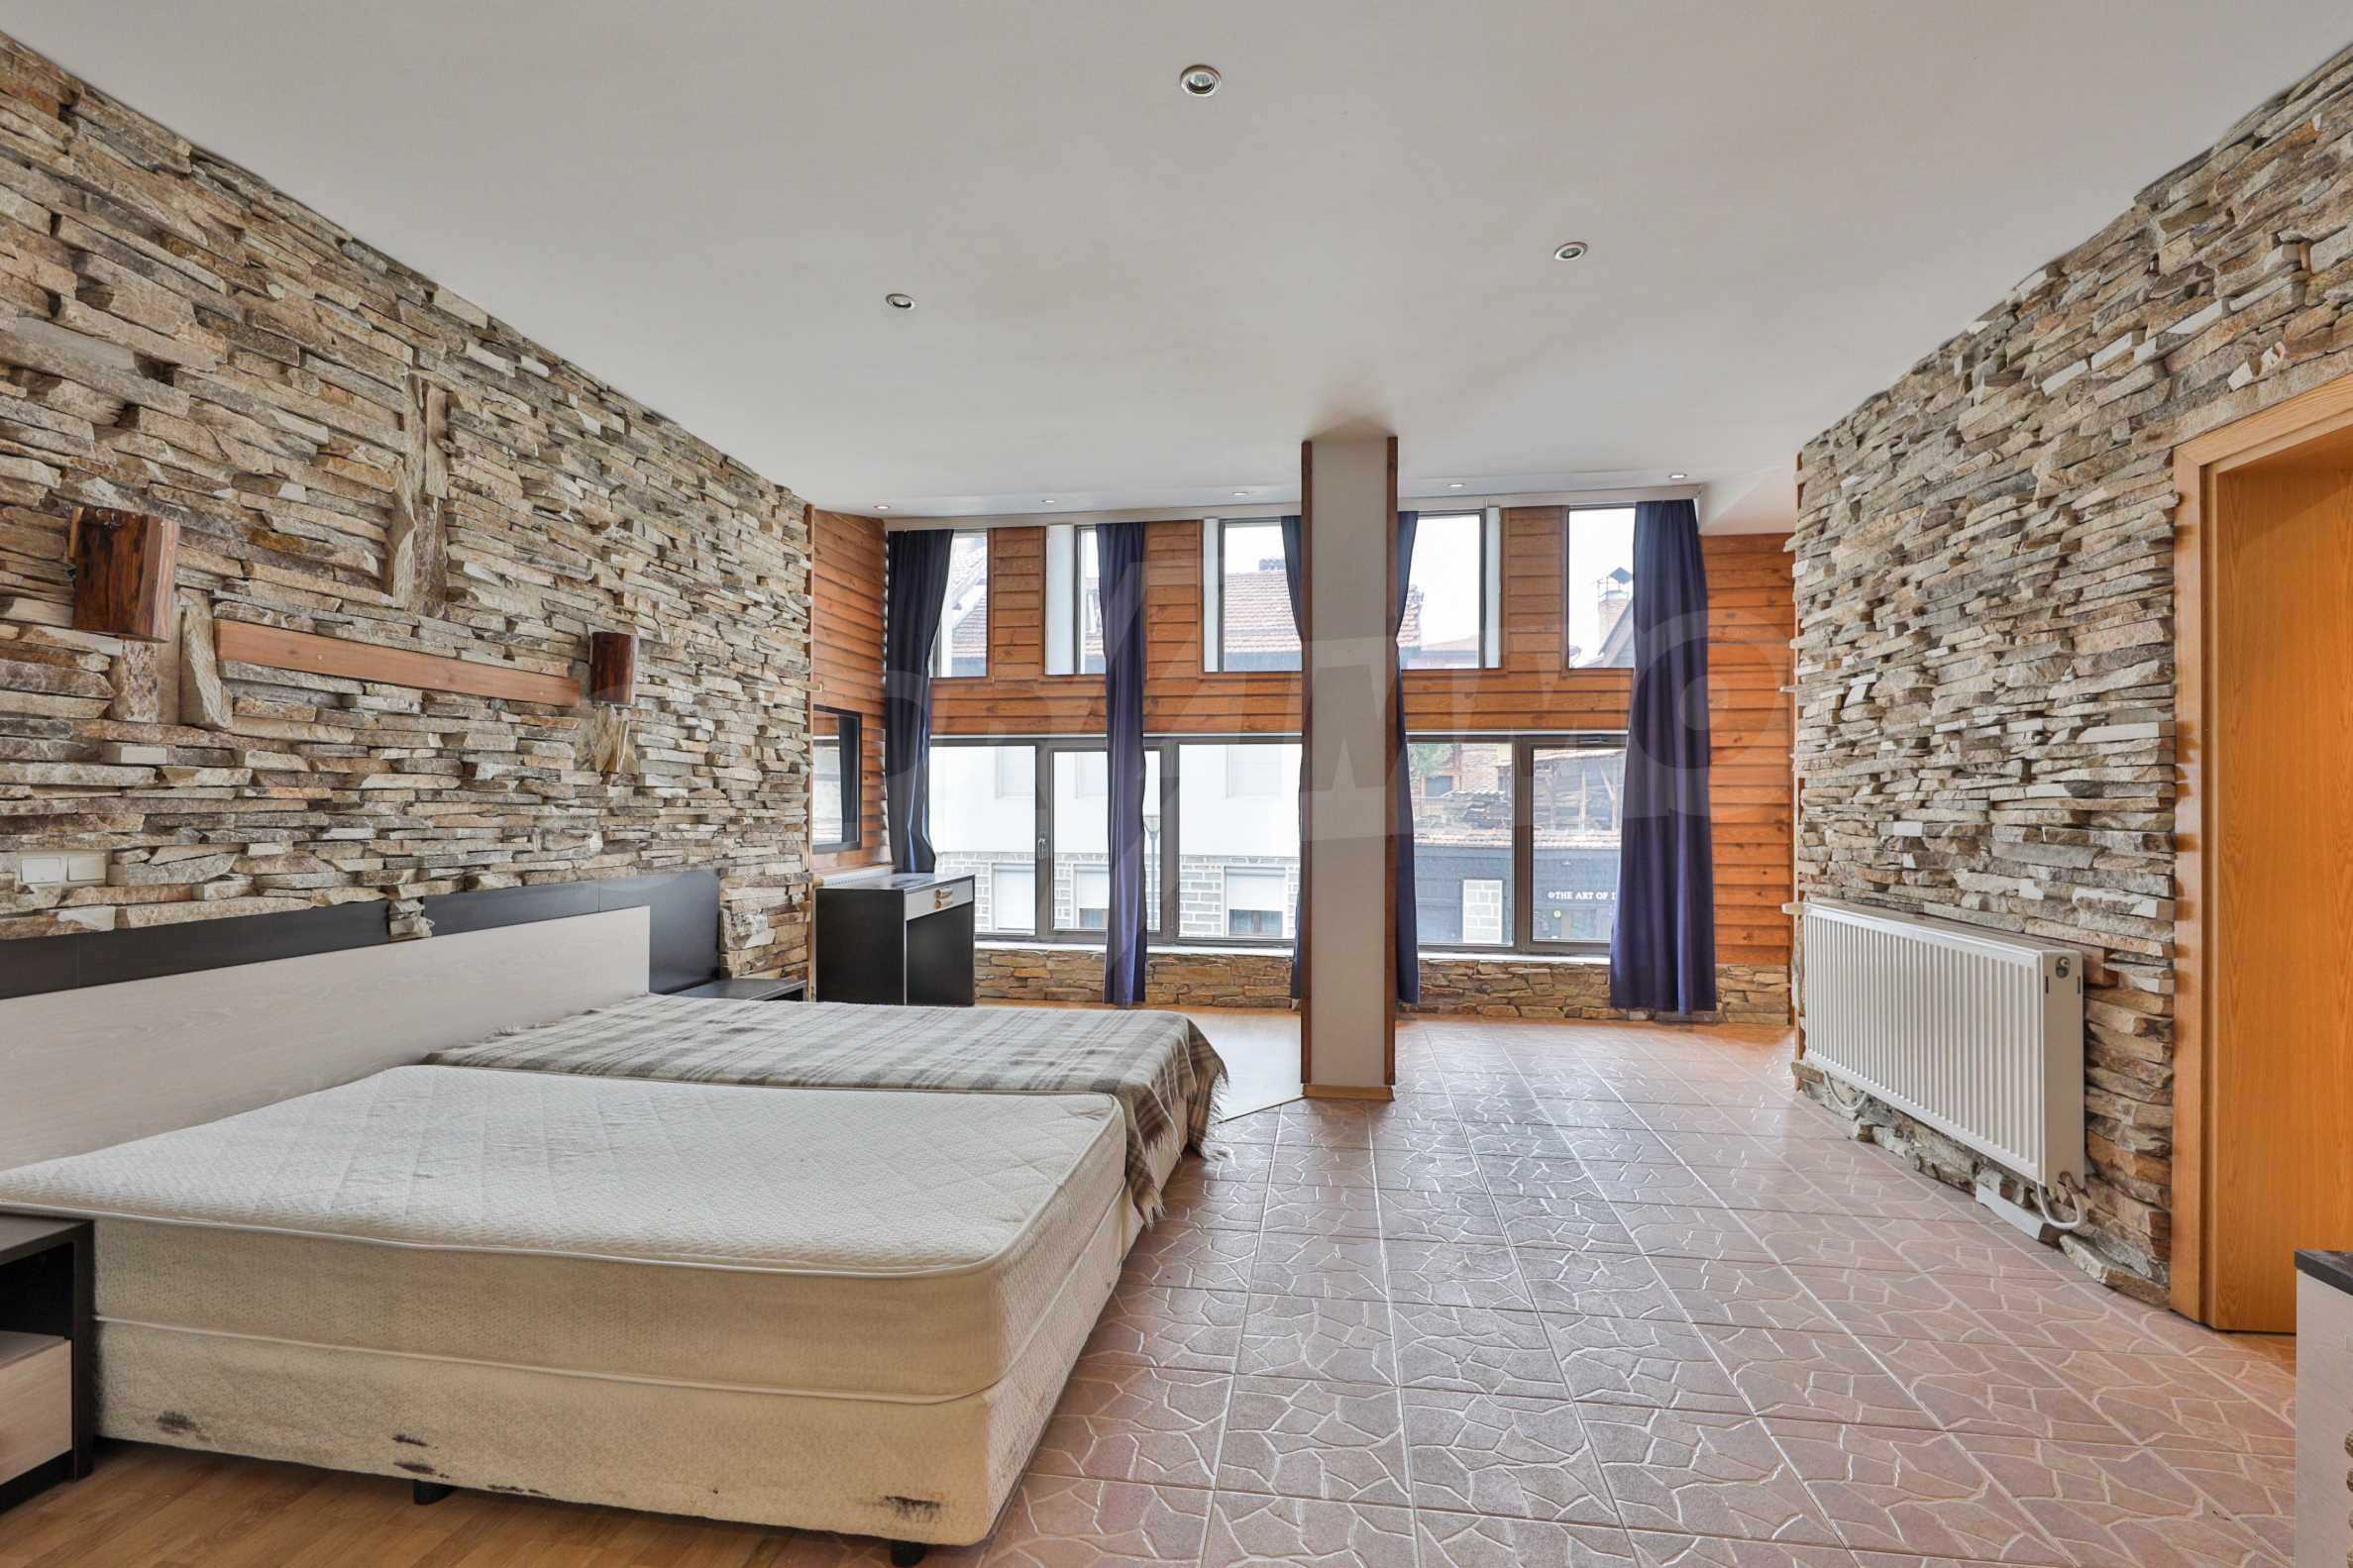 Pirin Apartments: Superb location right in the centre of Bansko 10